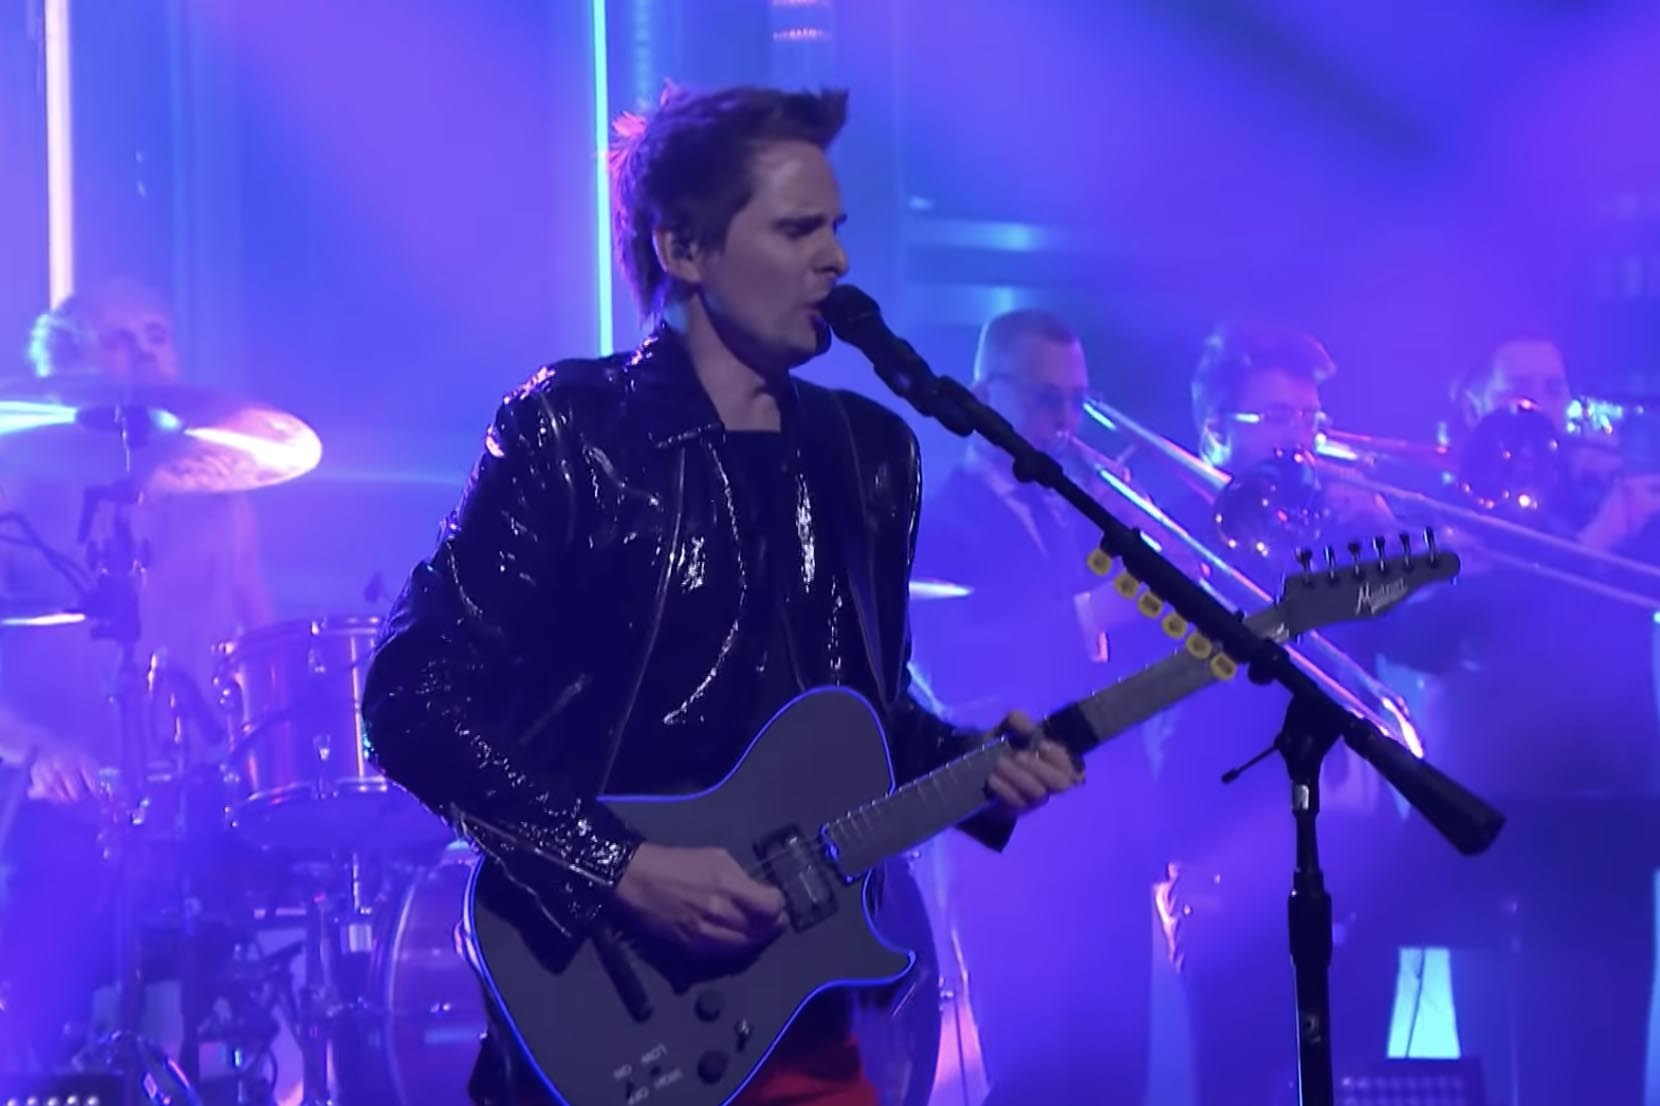 See Muse perform 'Pressure' on US telly